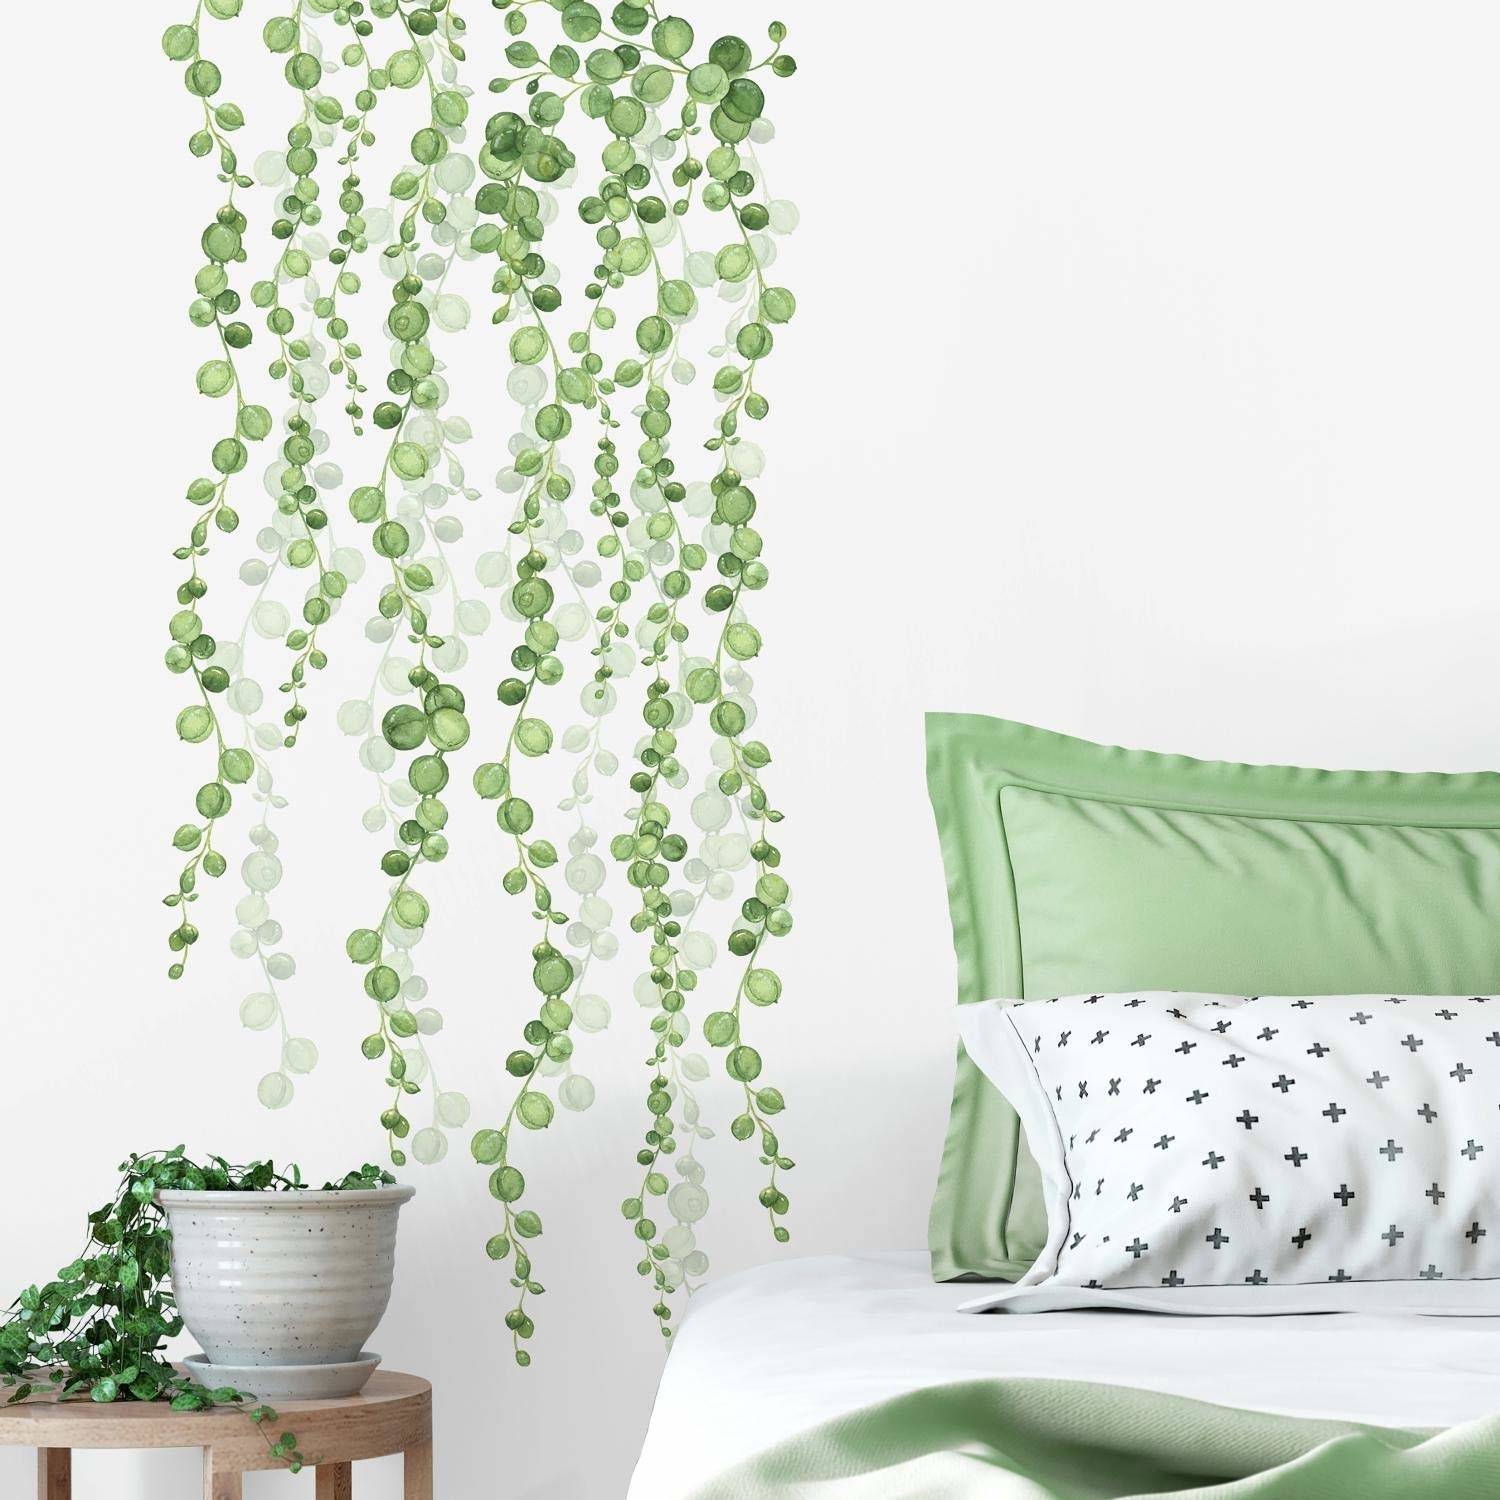 green wall decal mimicking vines descending down a wall